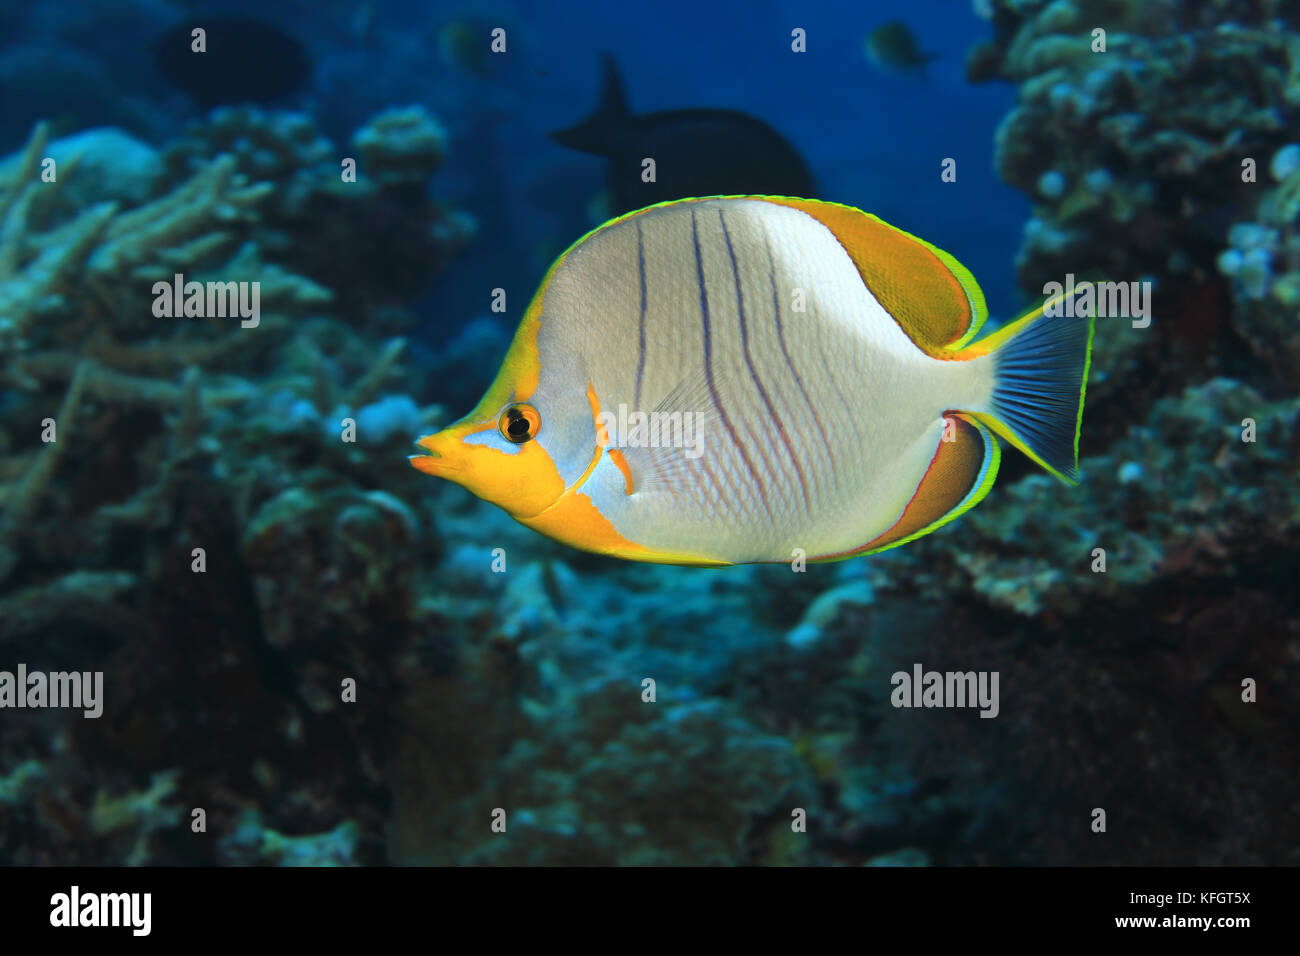 Yellowhead butterflyfish (Chaetodon xanthocephalus) in the tropical coral reef of the Maldives - Stock Image